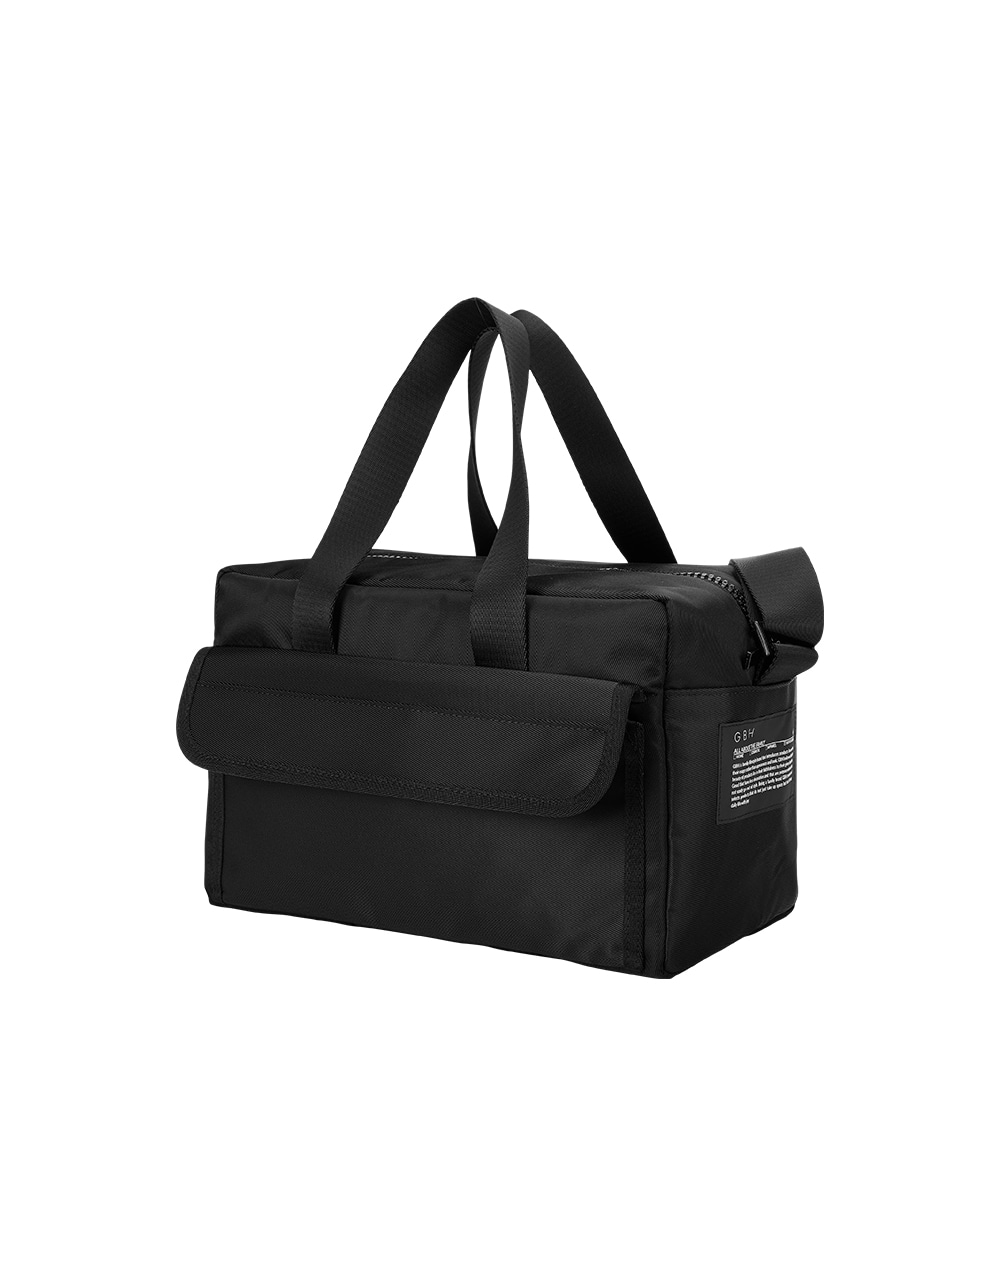 GBH HOME COOLER BAG